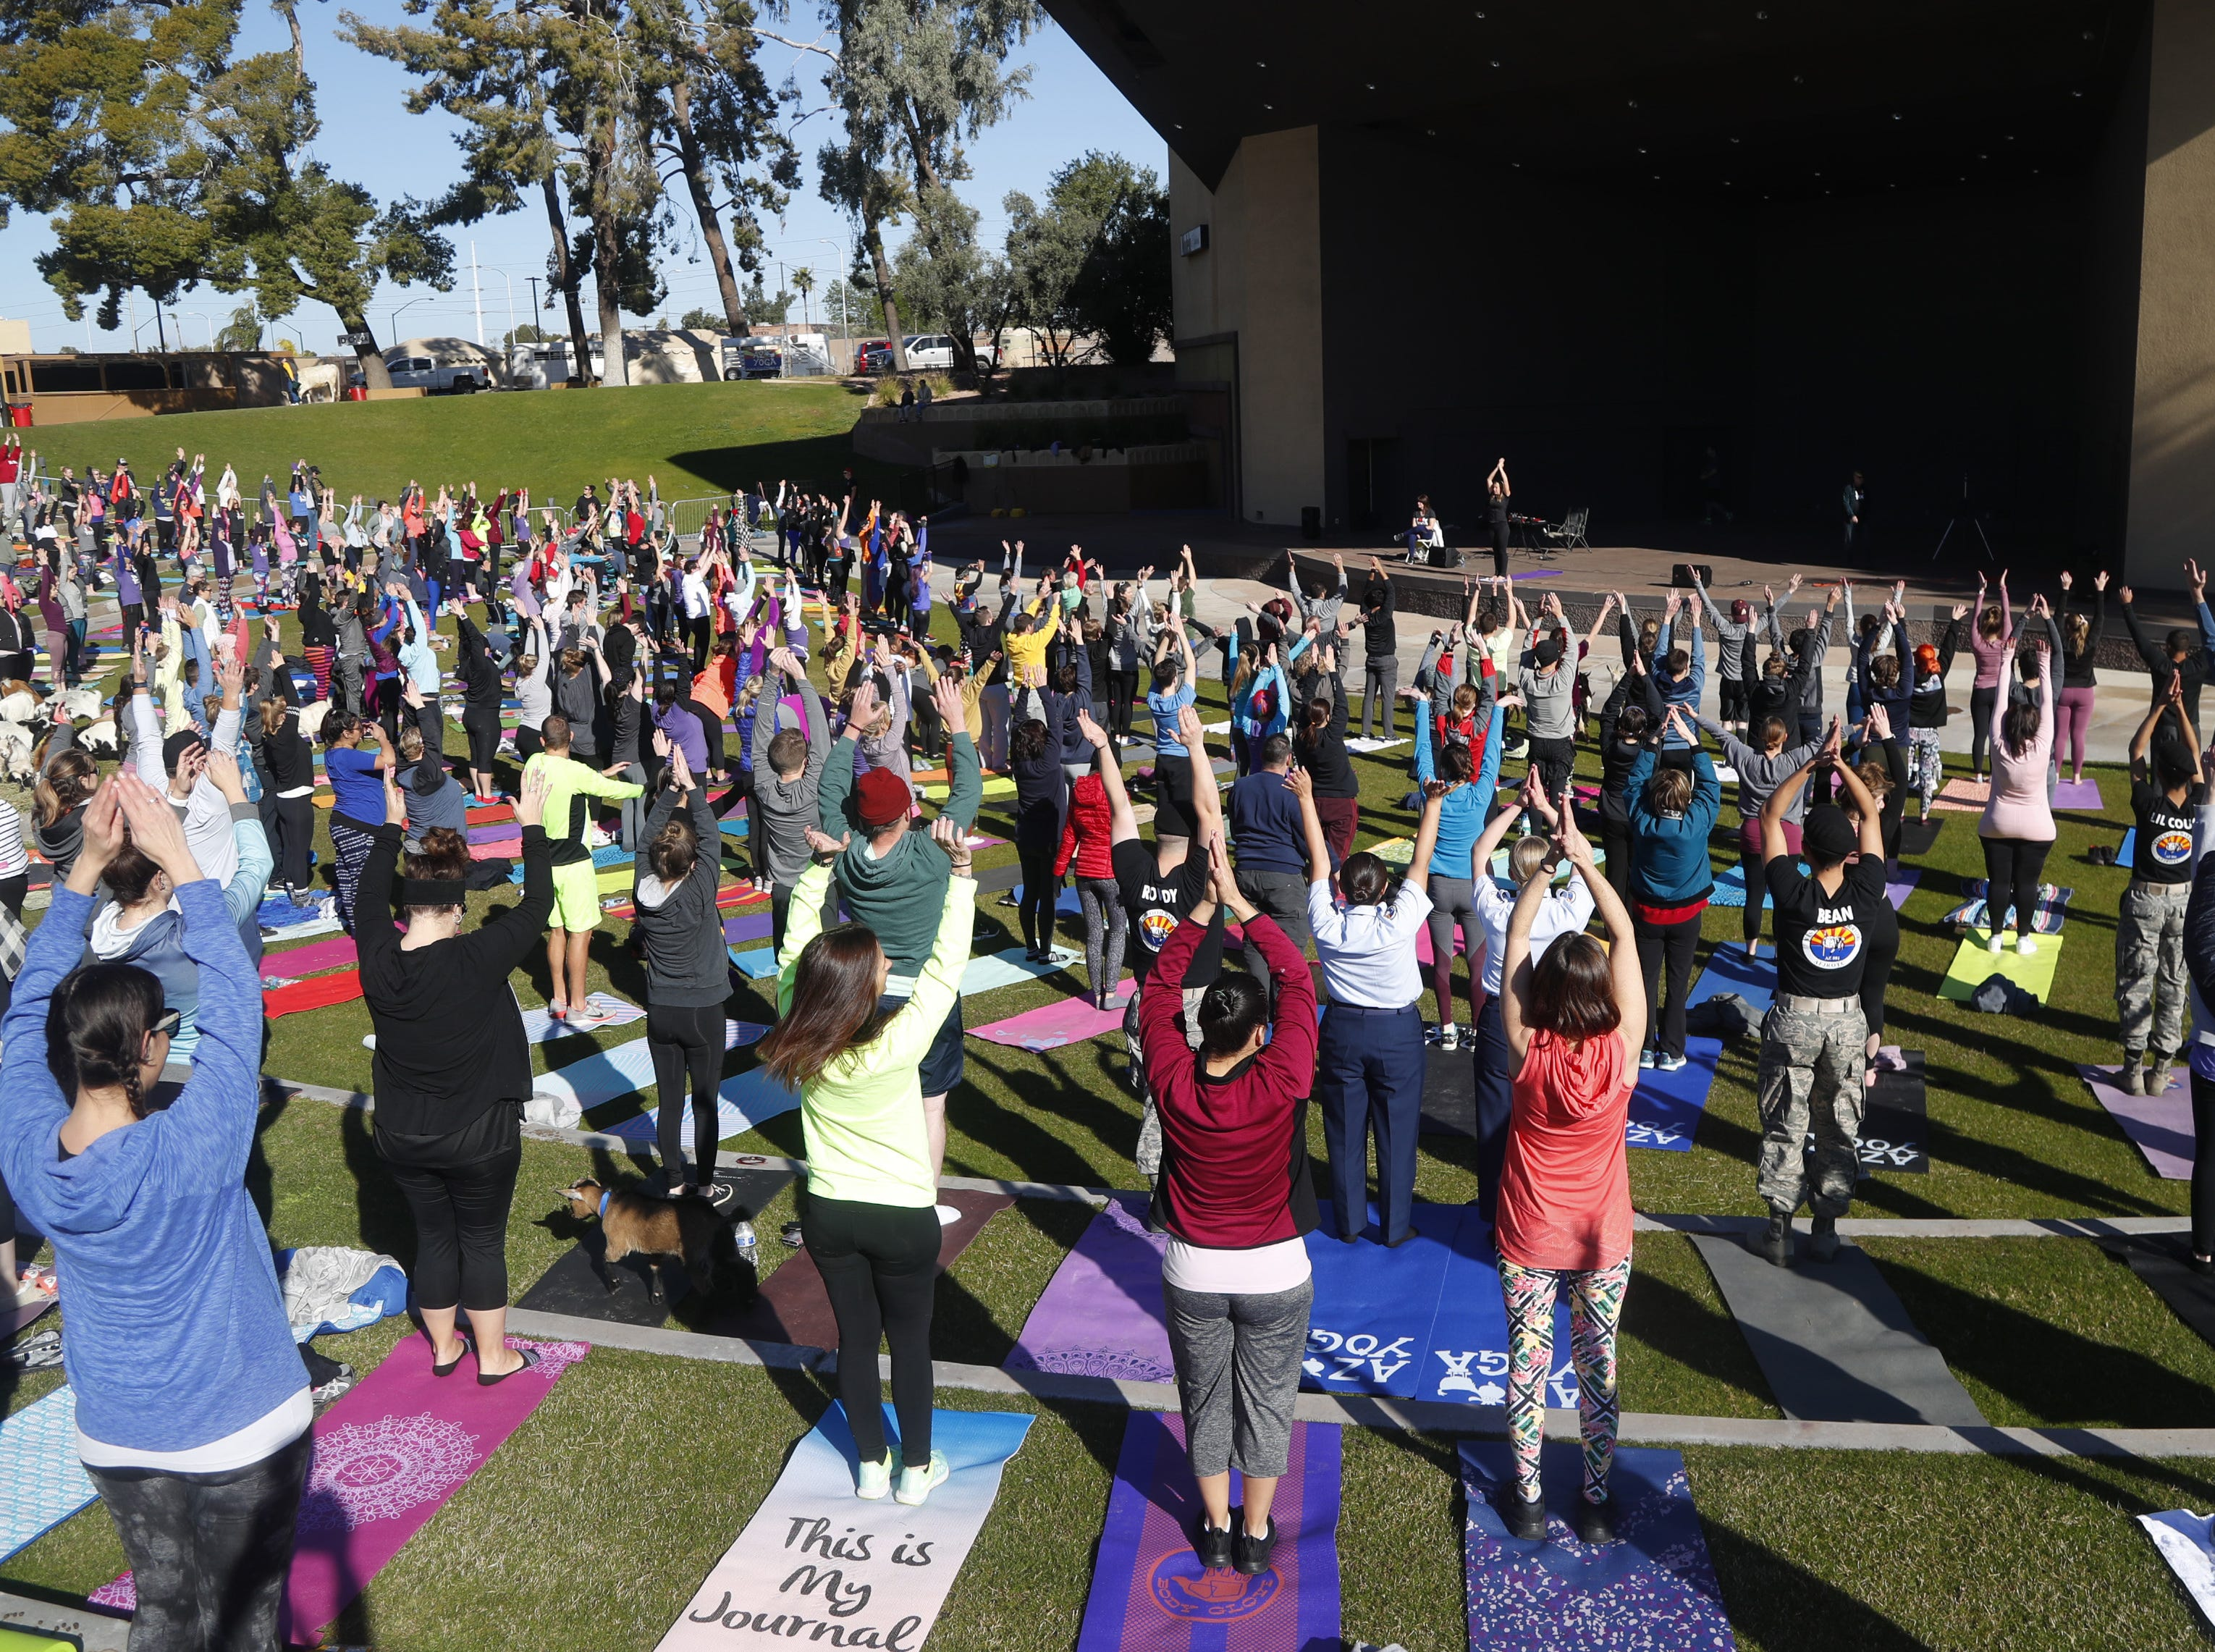 The goal was 350 people doing yoga during a Guinness World Record goat yoga attempt at the Mesa Amphitheatre in Mesa, Ariz. on Feb. 23, 2019.